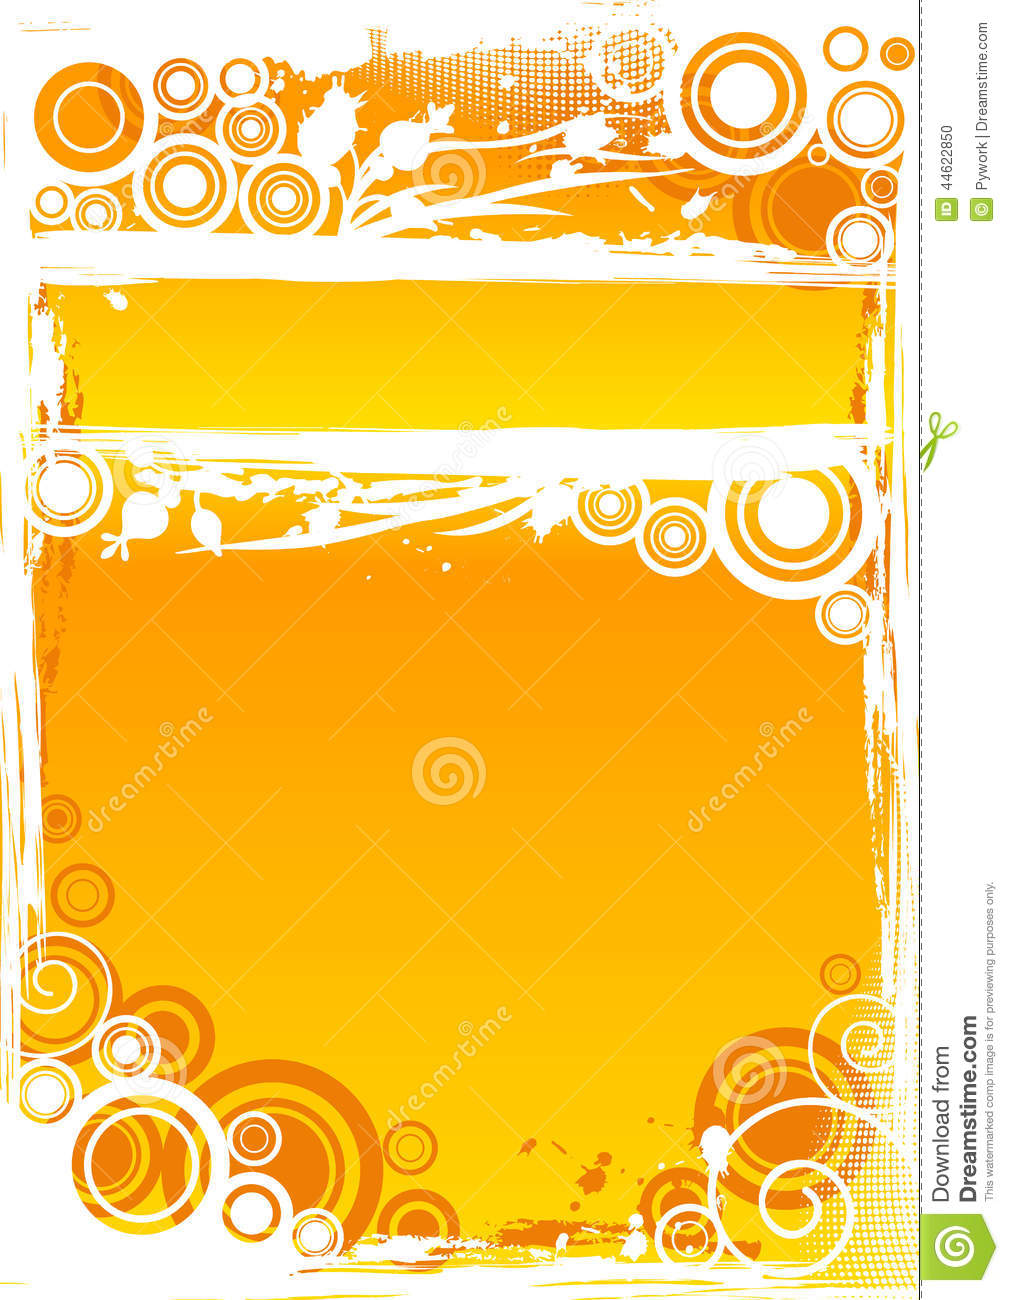 Vector Grunge Circle Background In Orange With Highlighted Title.